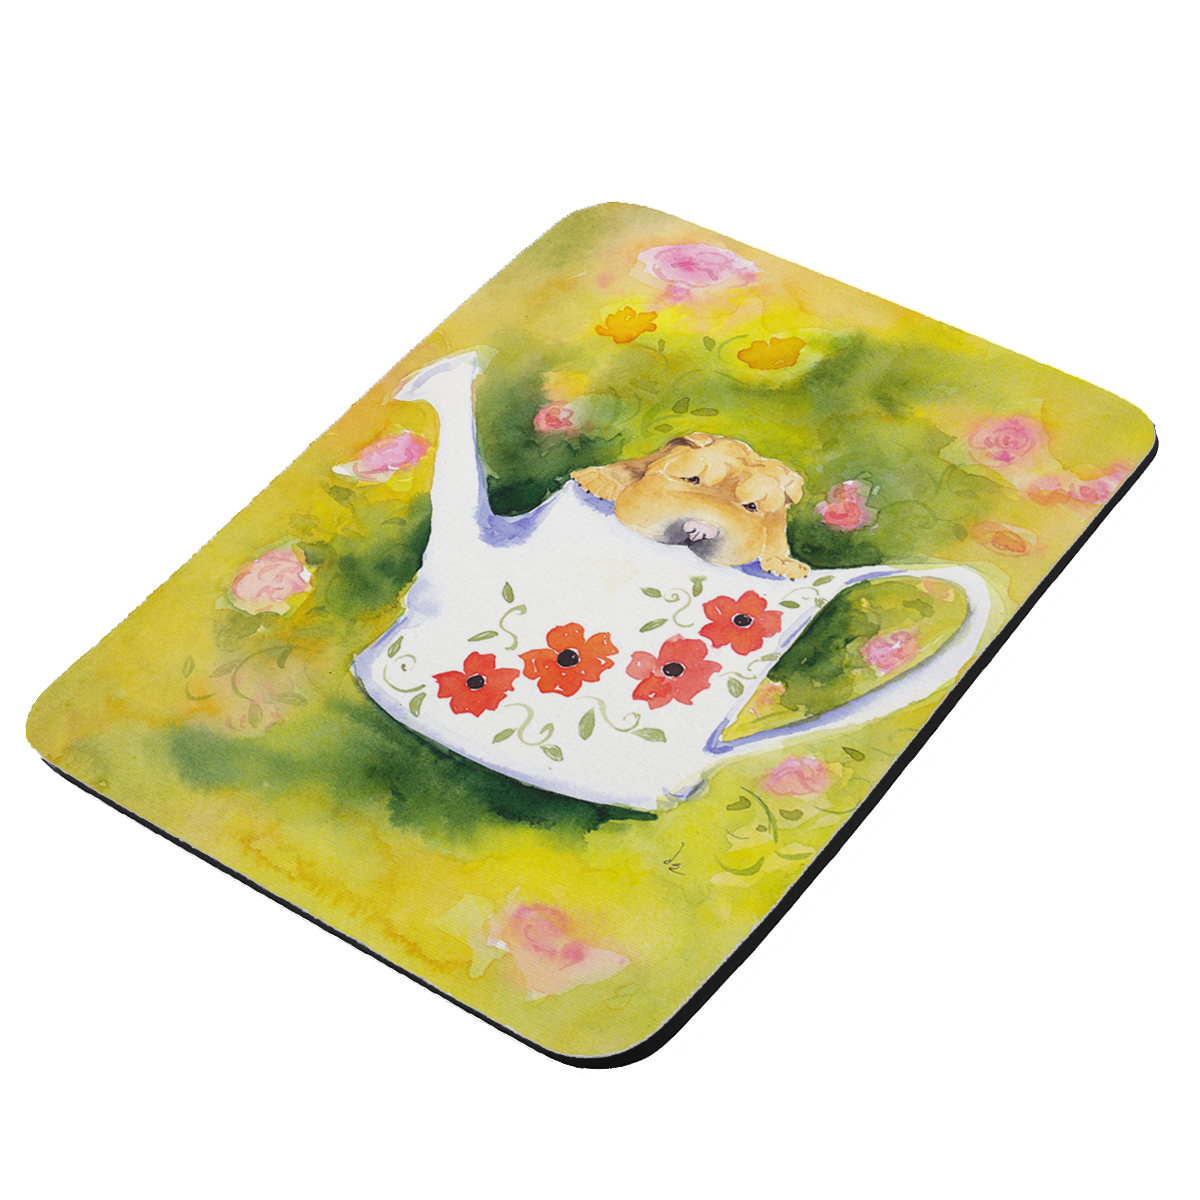 Chinese Shar-Pei Puppy in Watering Can with Flowers Art by Denise Every - KuzmarK Mousepad / Hot Pad / Trivet